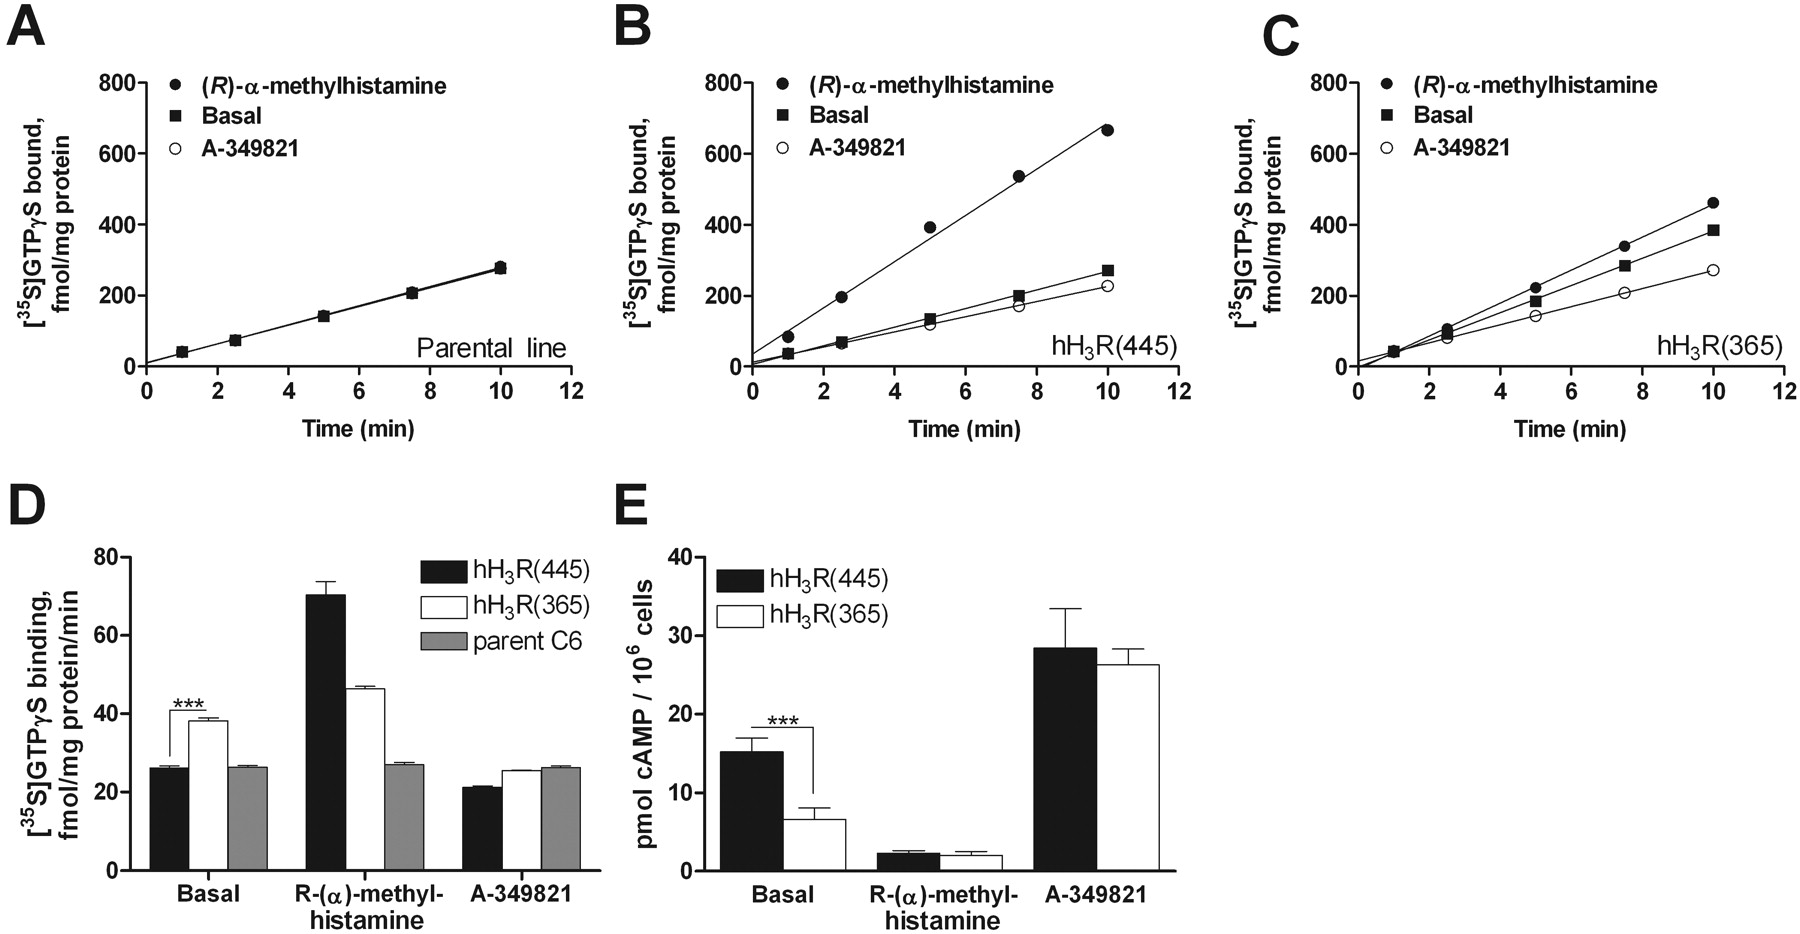 An 80-Amino Acid Deletion in t...